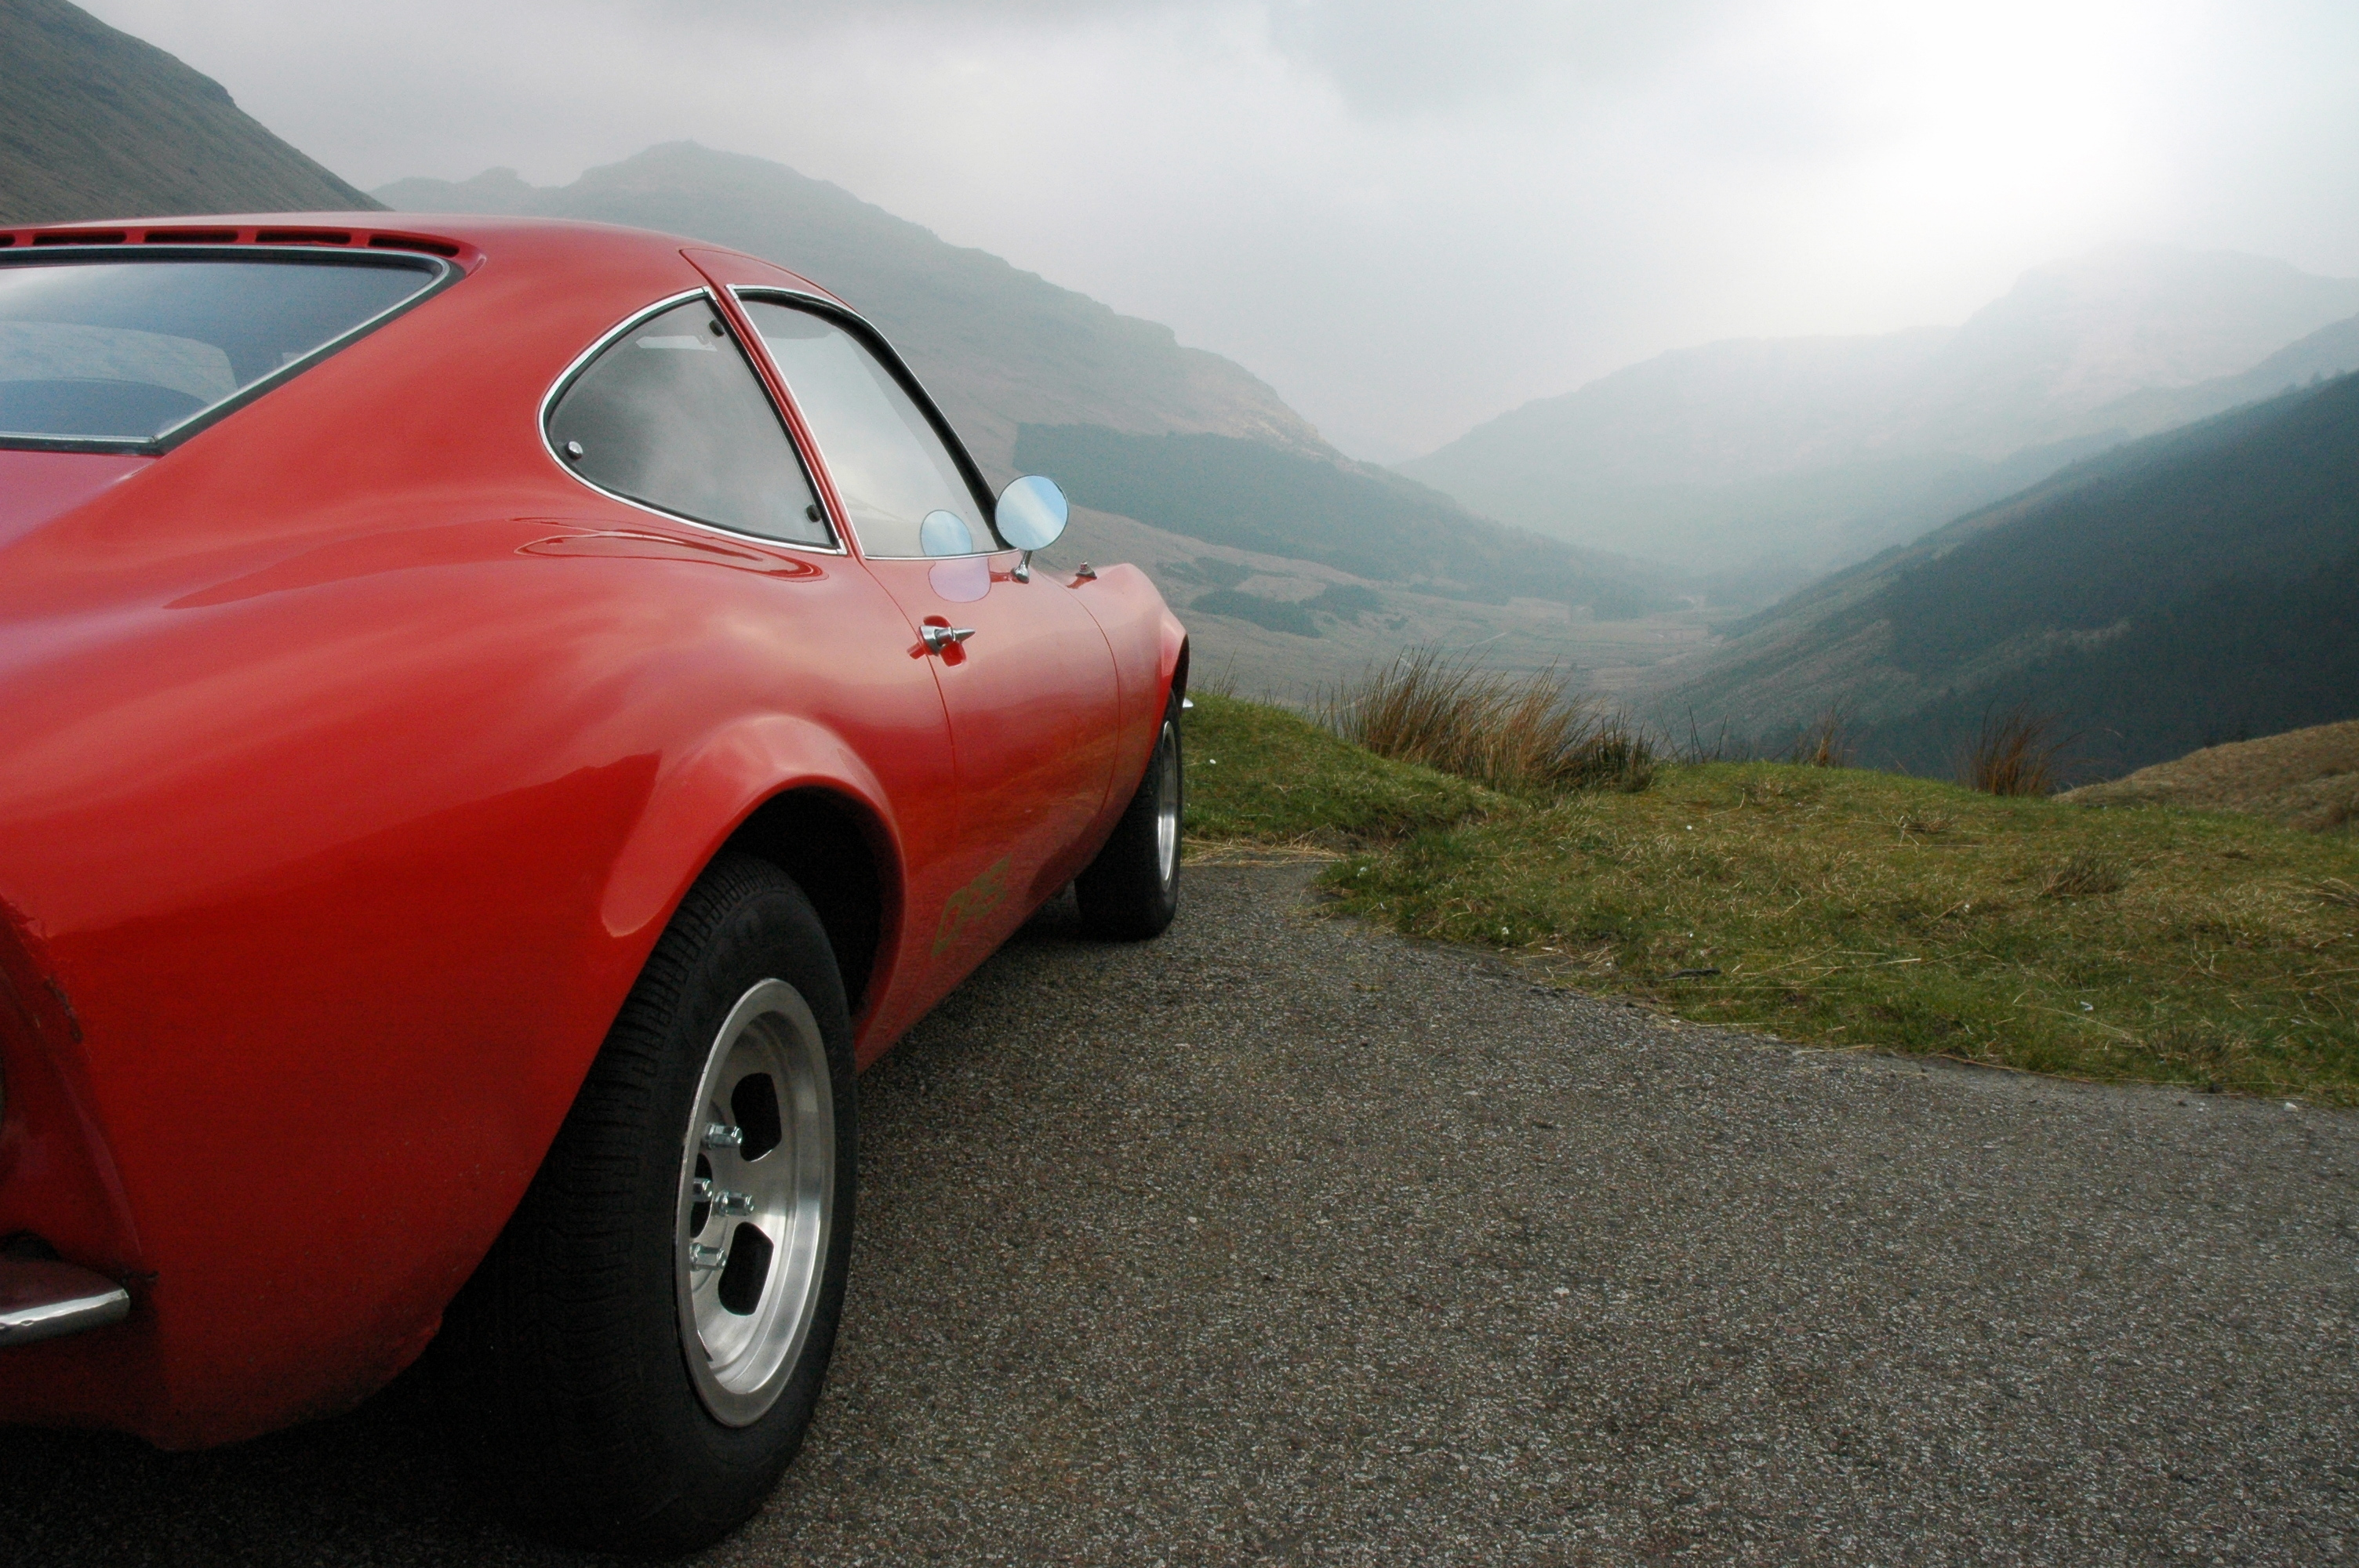 1971 OPEL GT IN SCOTTISH HIGLANDS BY DAN MIDDLETON